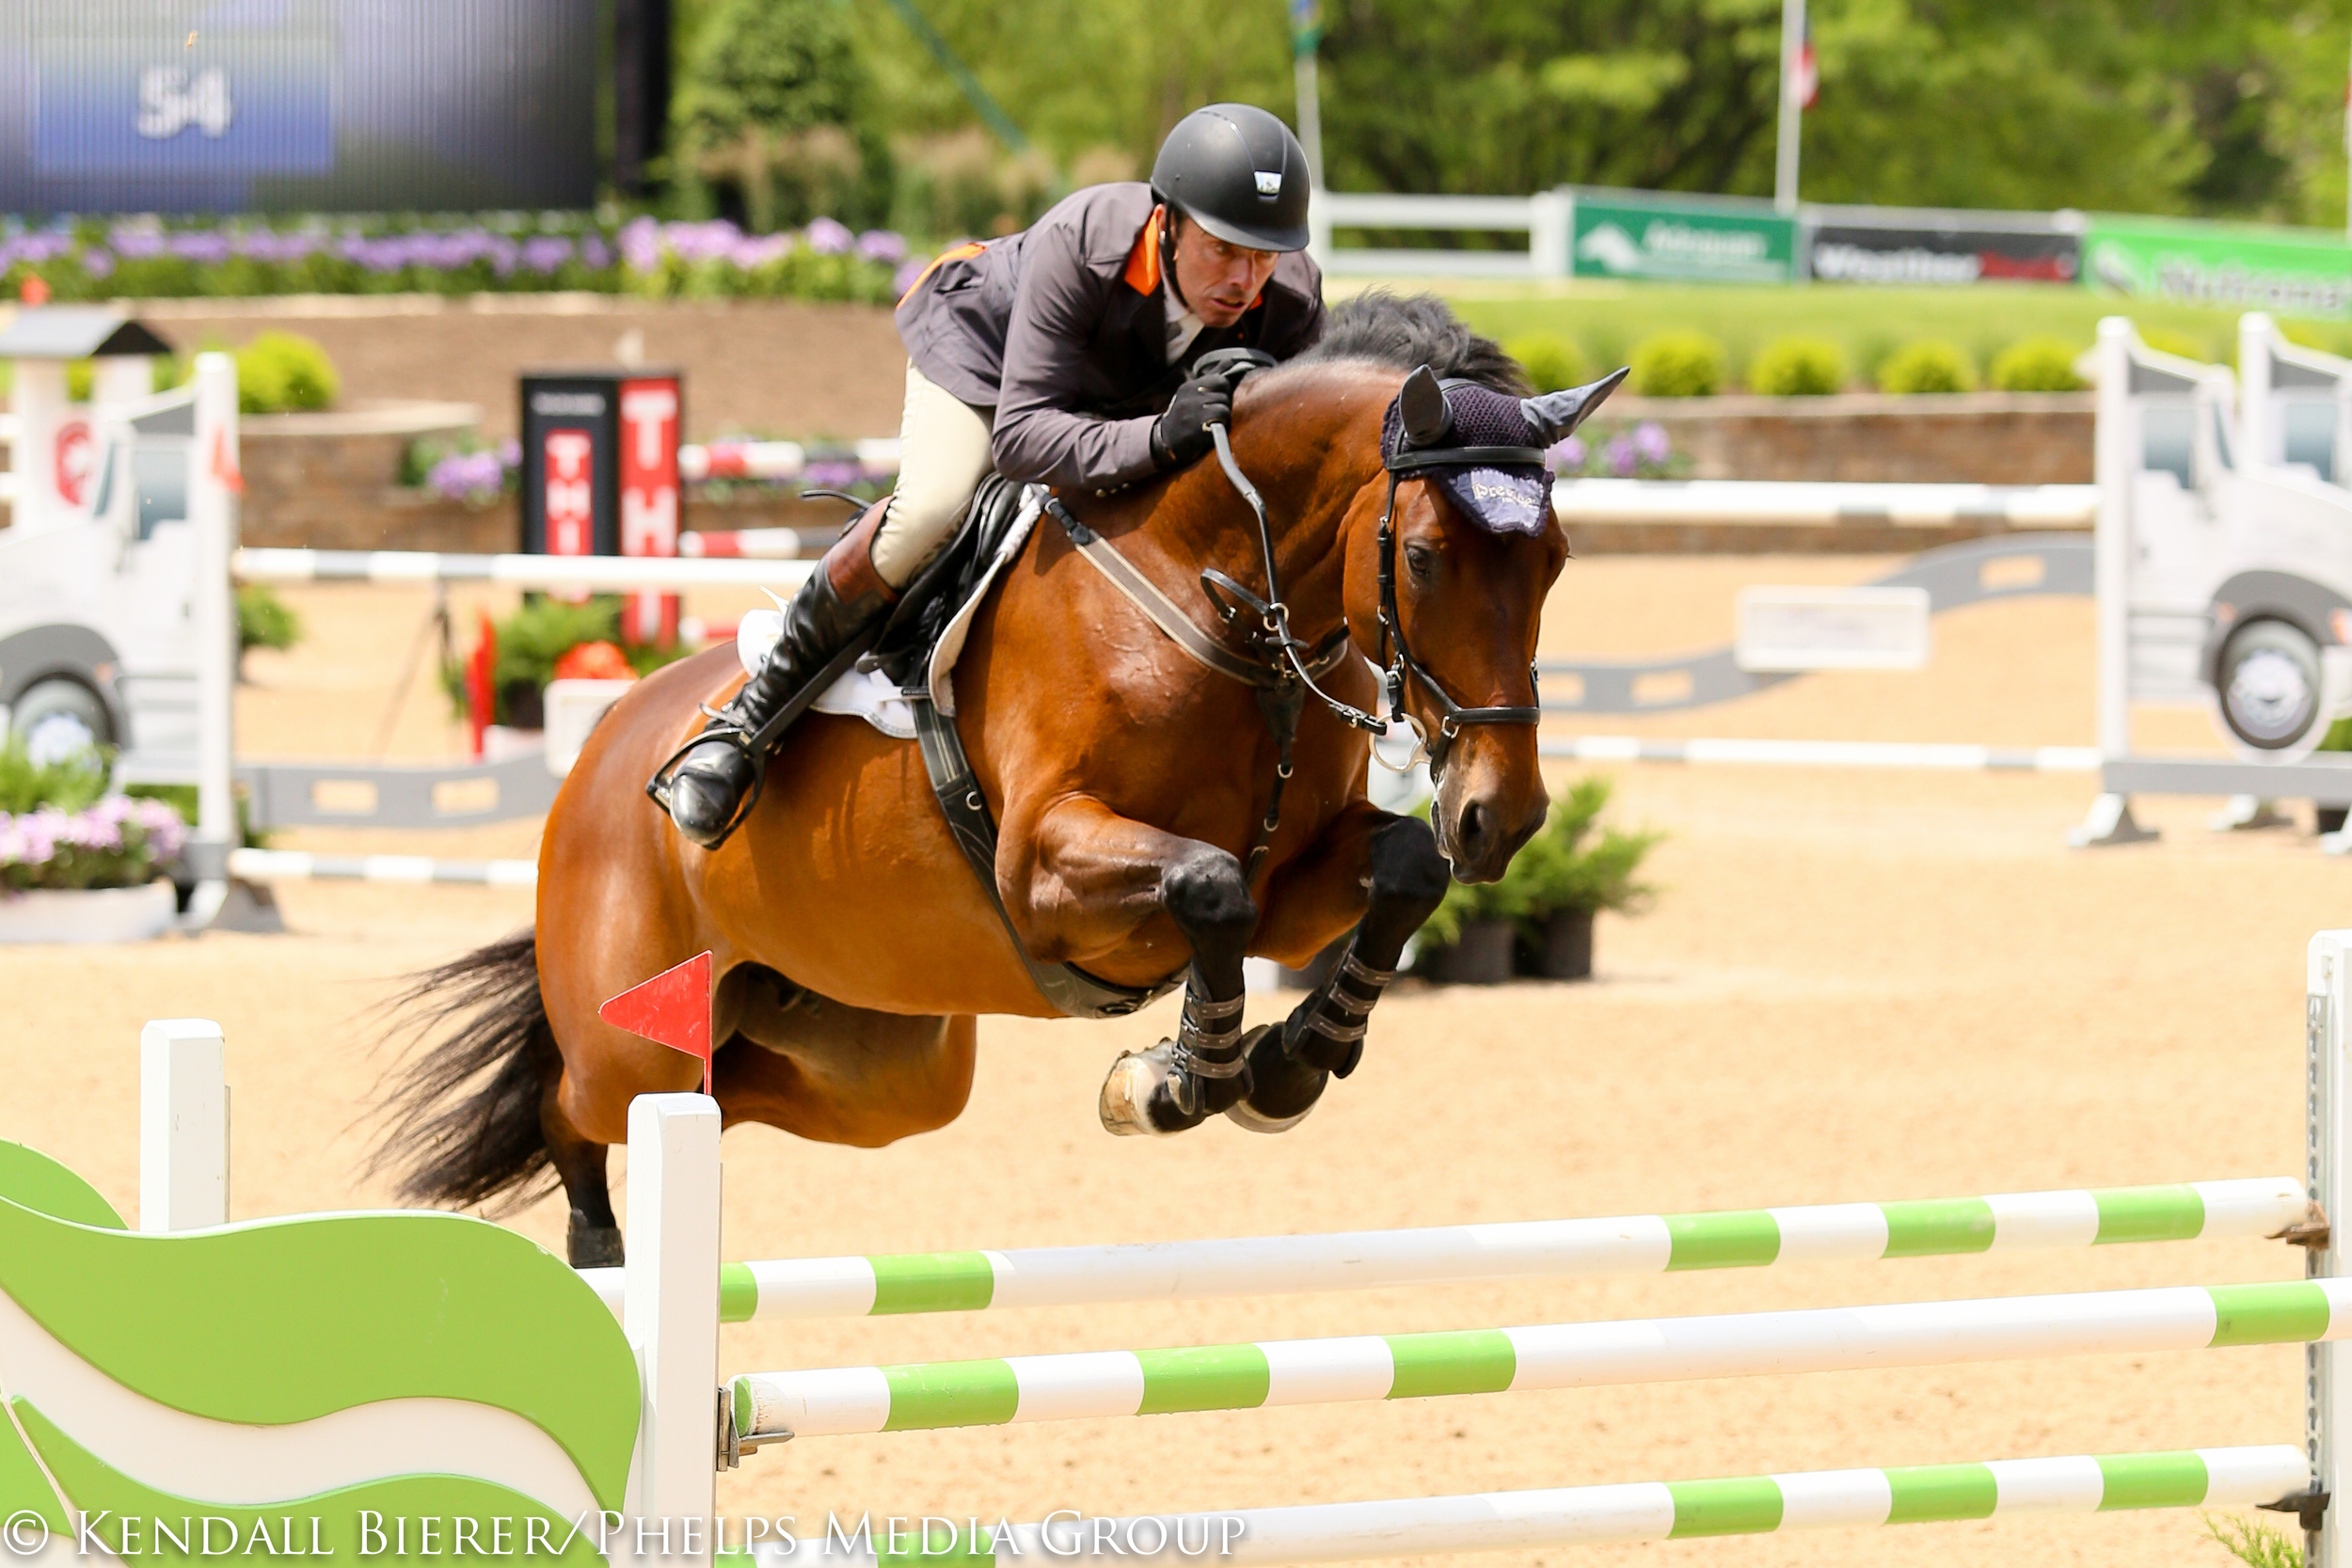 Wilhelm Genn and Welcome Cor are winners of multiple grand prix events.                                  Photo by Kendall Bierer